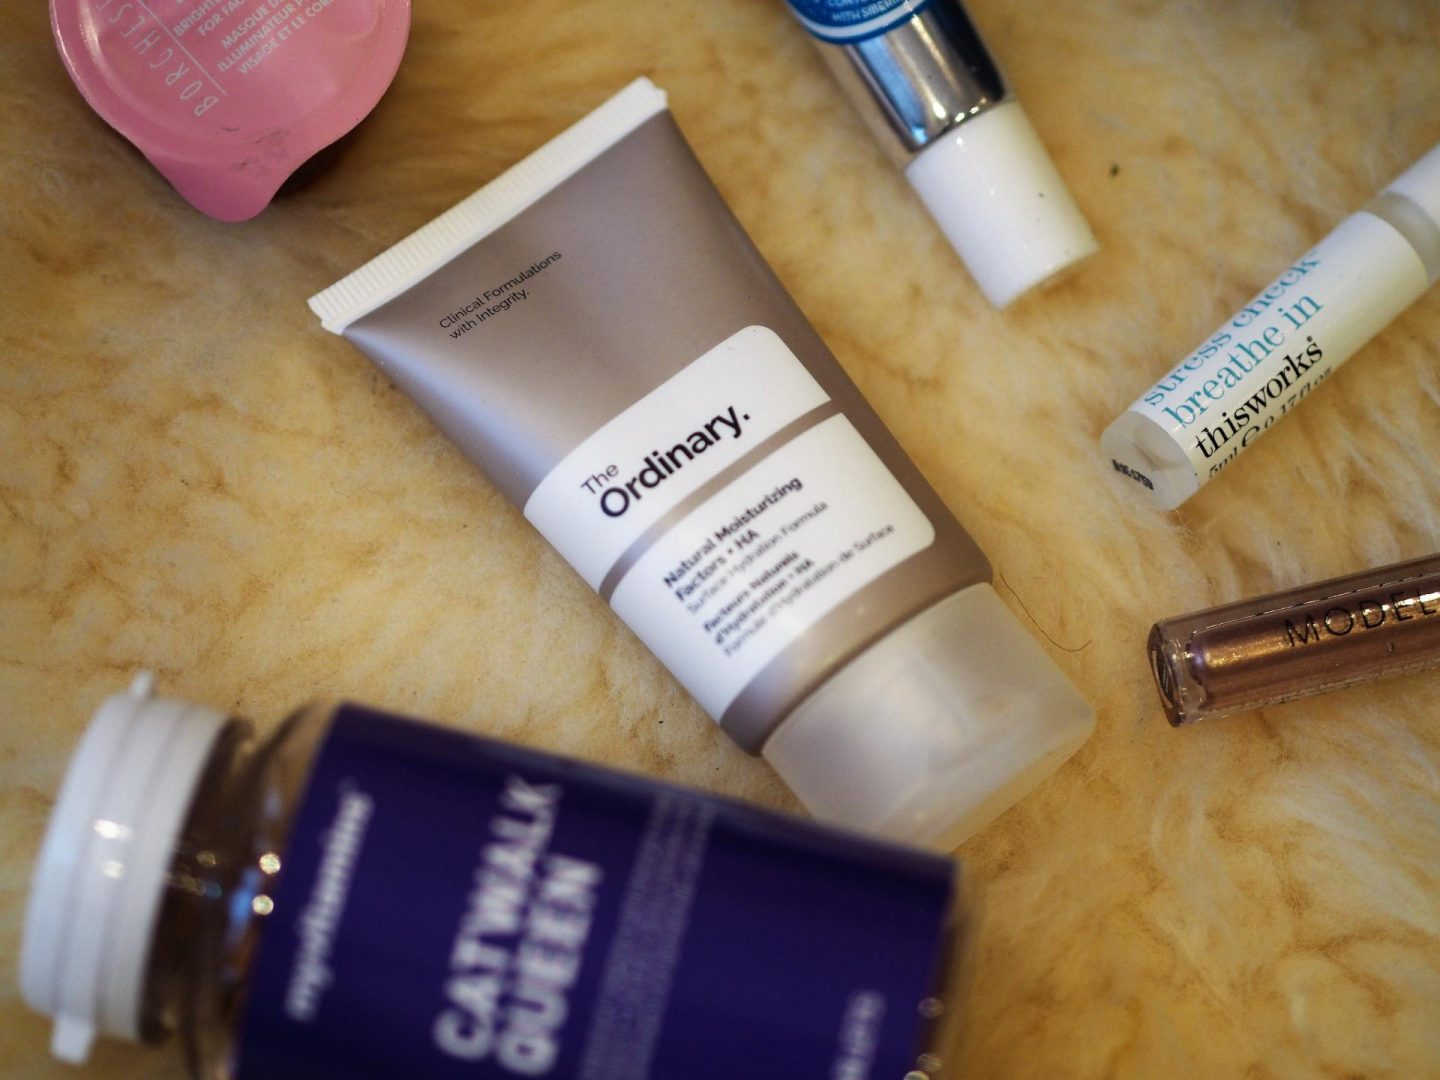 Lookfantastic Beauty Box - Product: The Ordinary Natural Moisturizing Factors + HA.